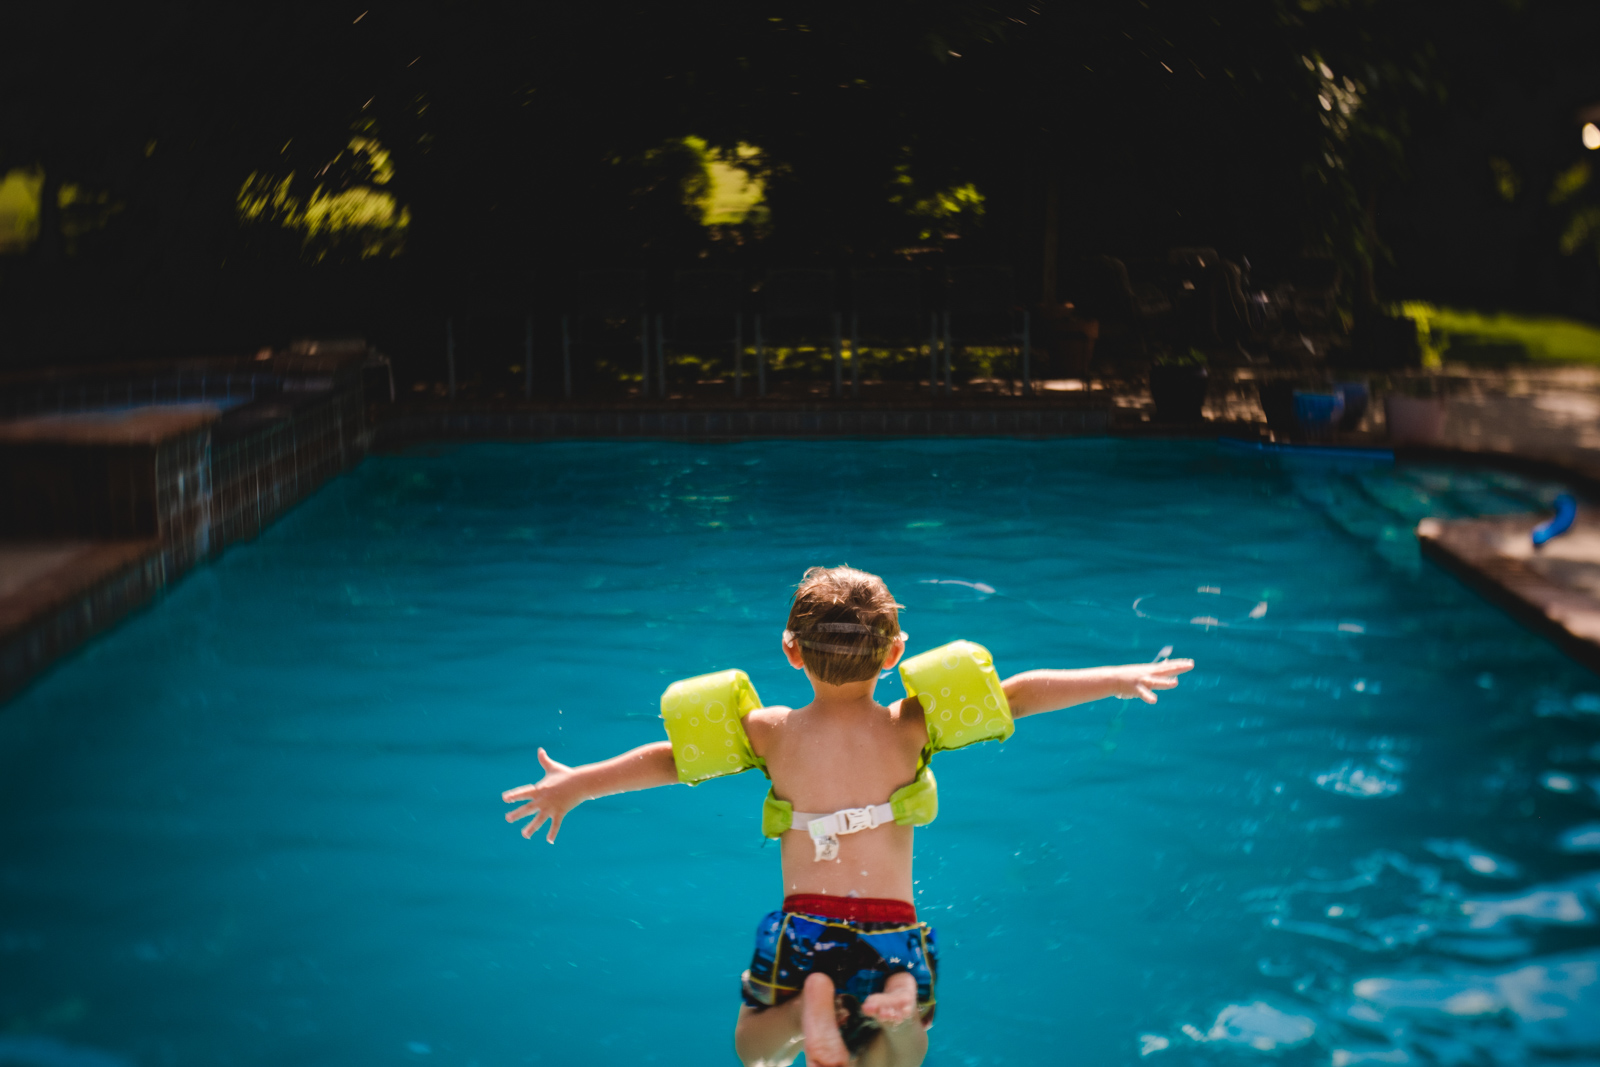 child with arms outstretched jumping into pool by natalie greenroyd